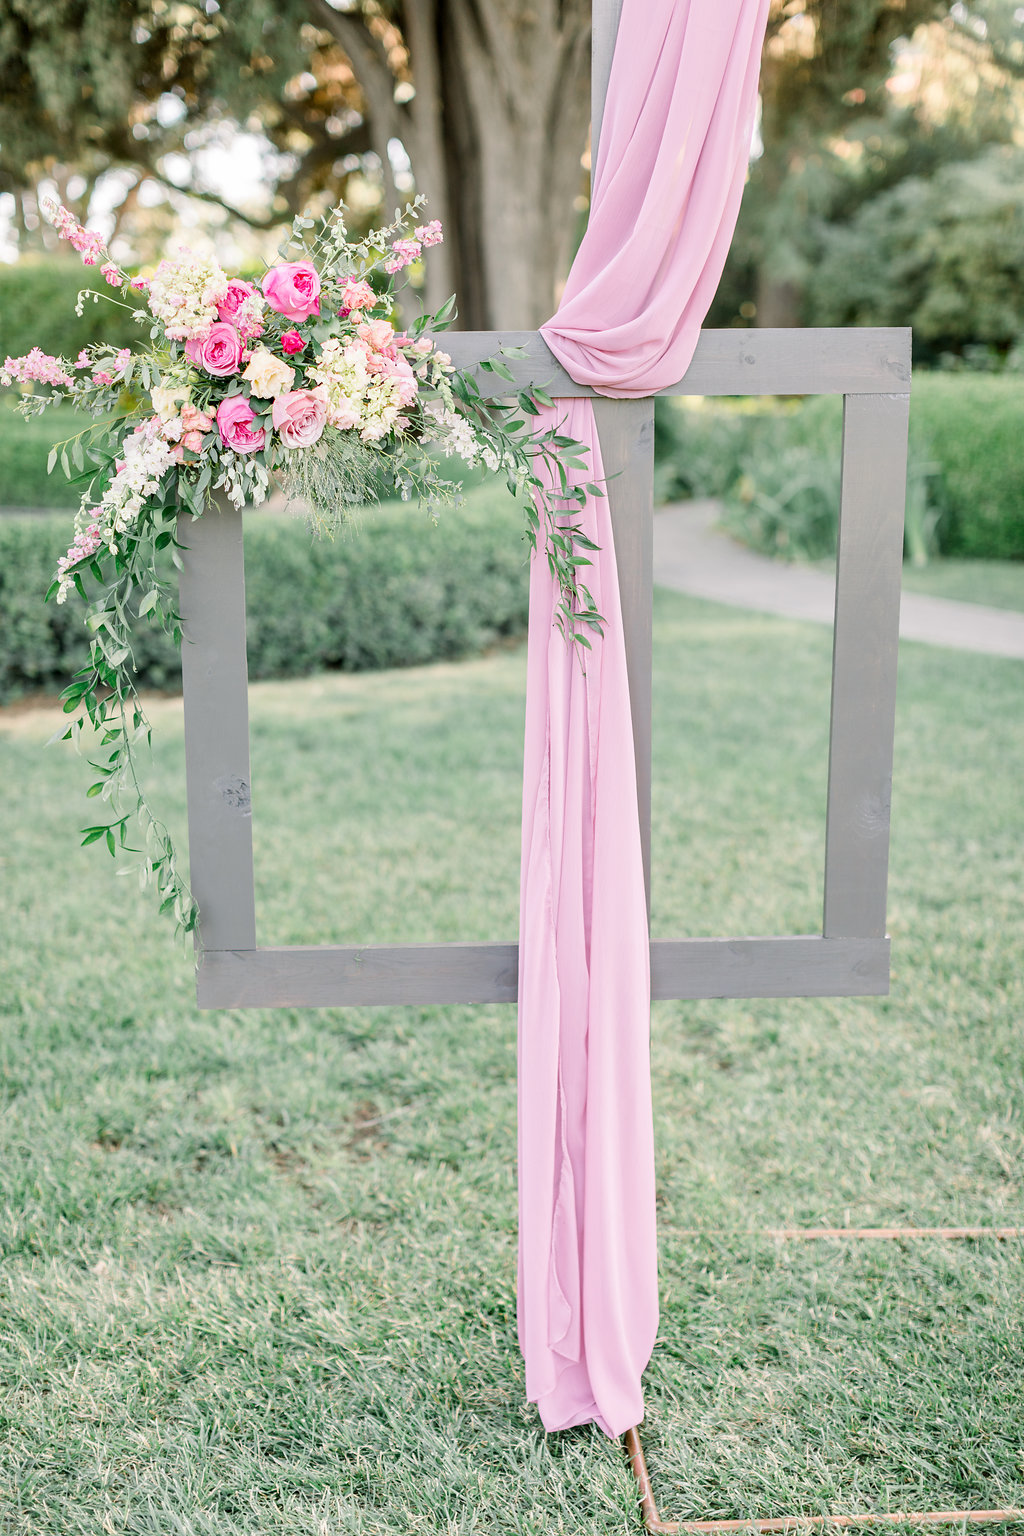 Easy wedding installation idea using silk chiffon linens and floral arrangements